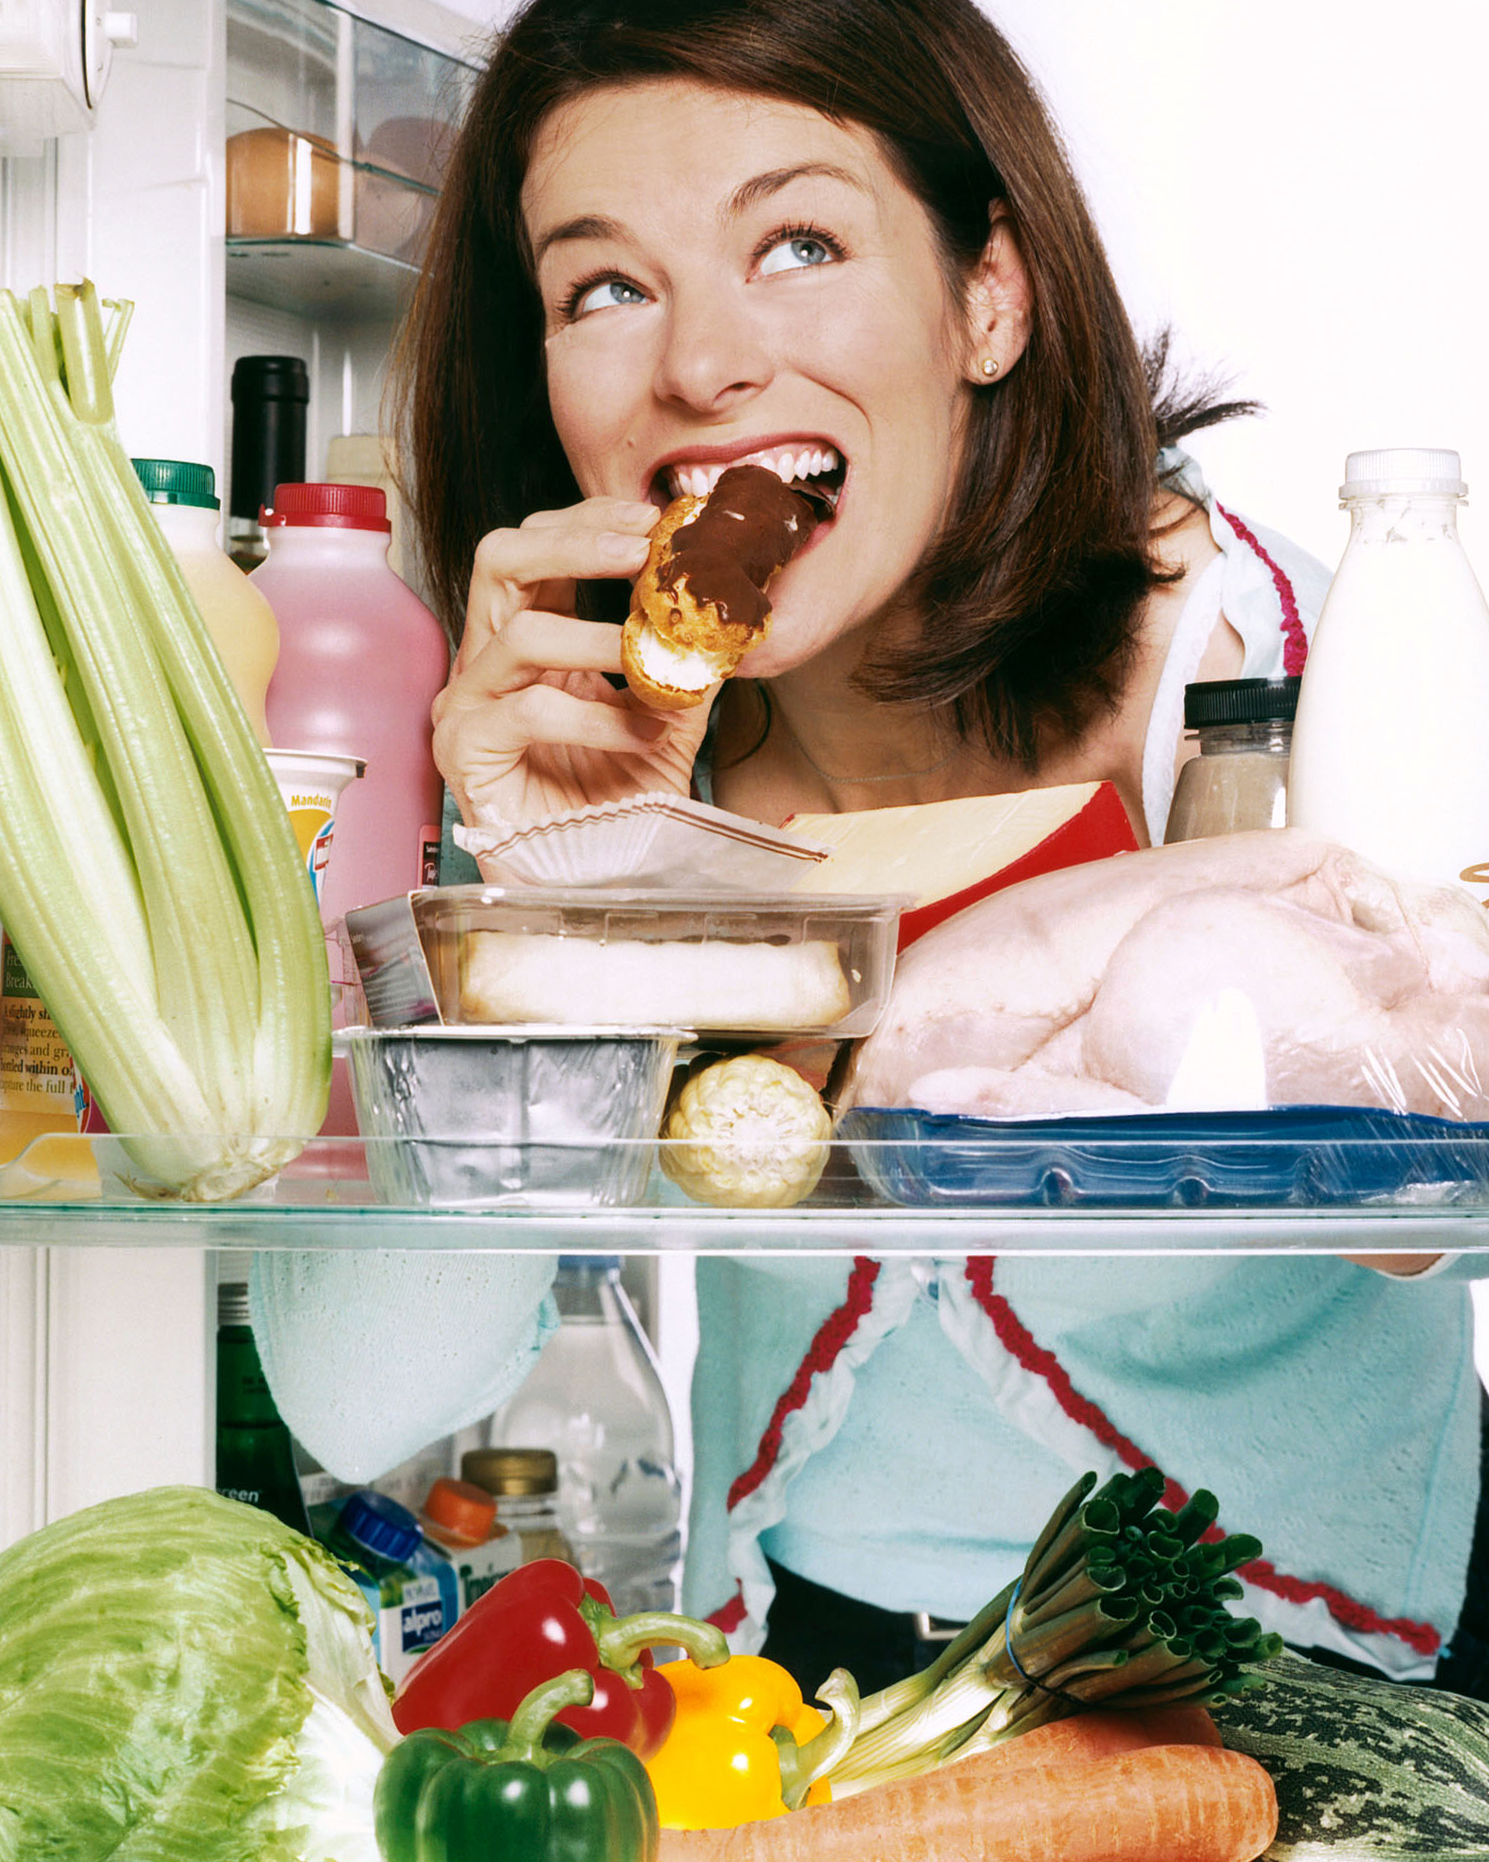 woman eating food from fridge